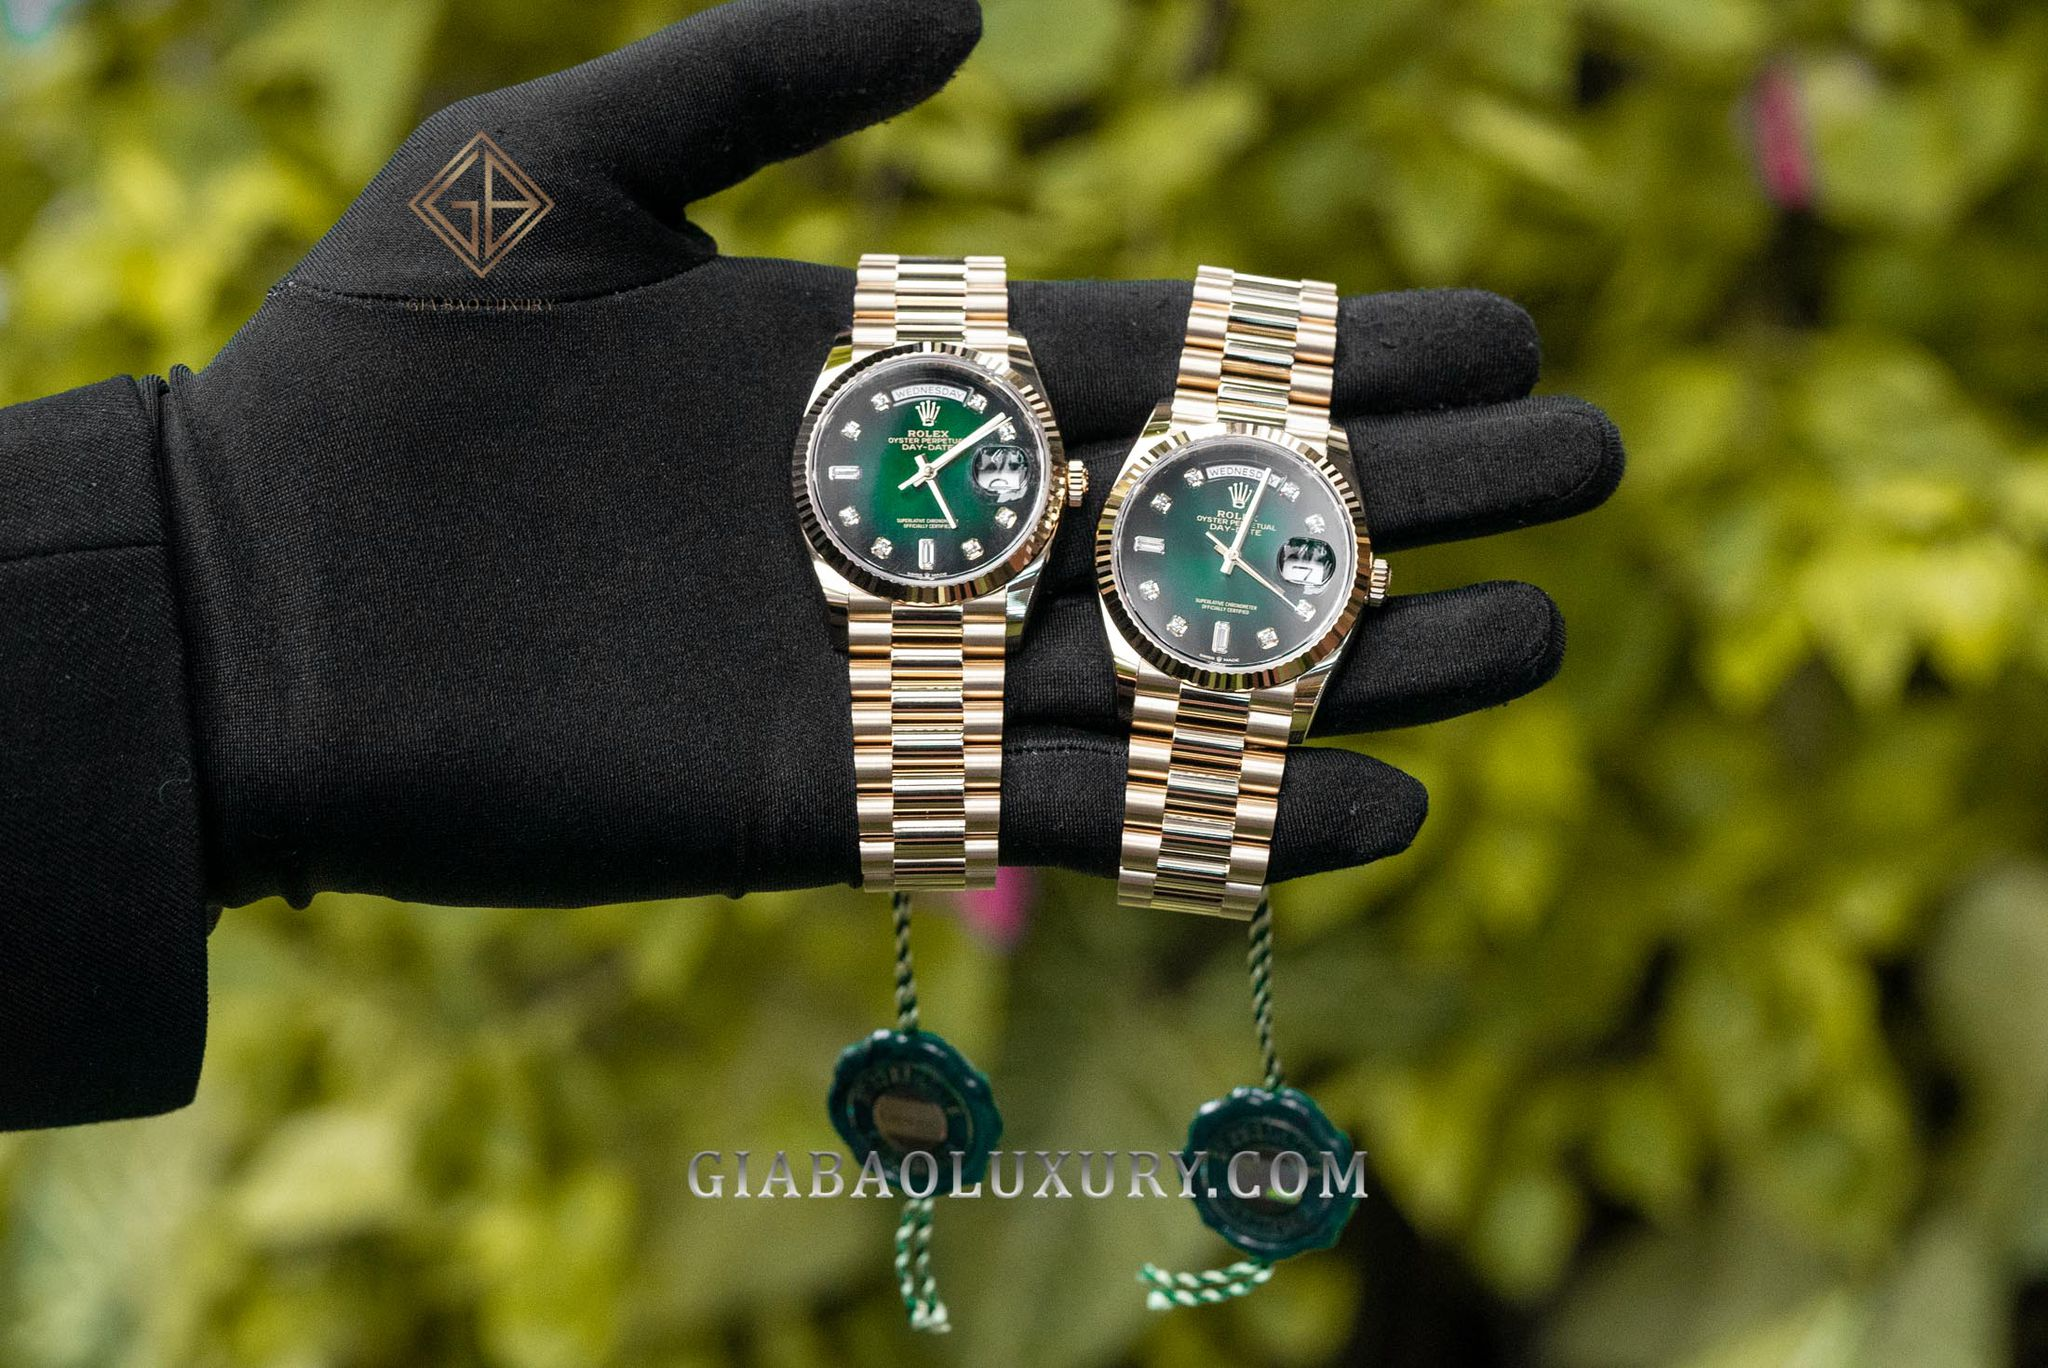 Đồng Hồ Rolex Day-Date 36 128238 Mặt Số Ombre Xanh Lá